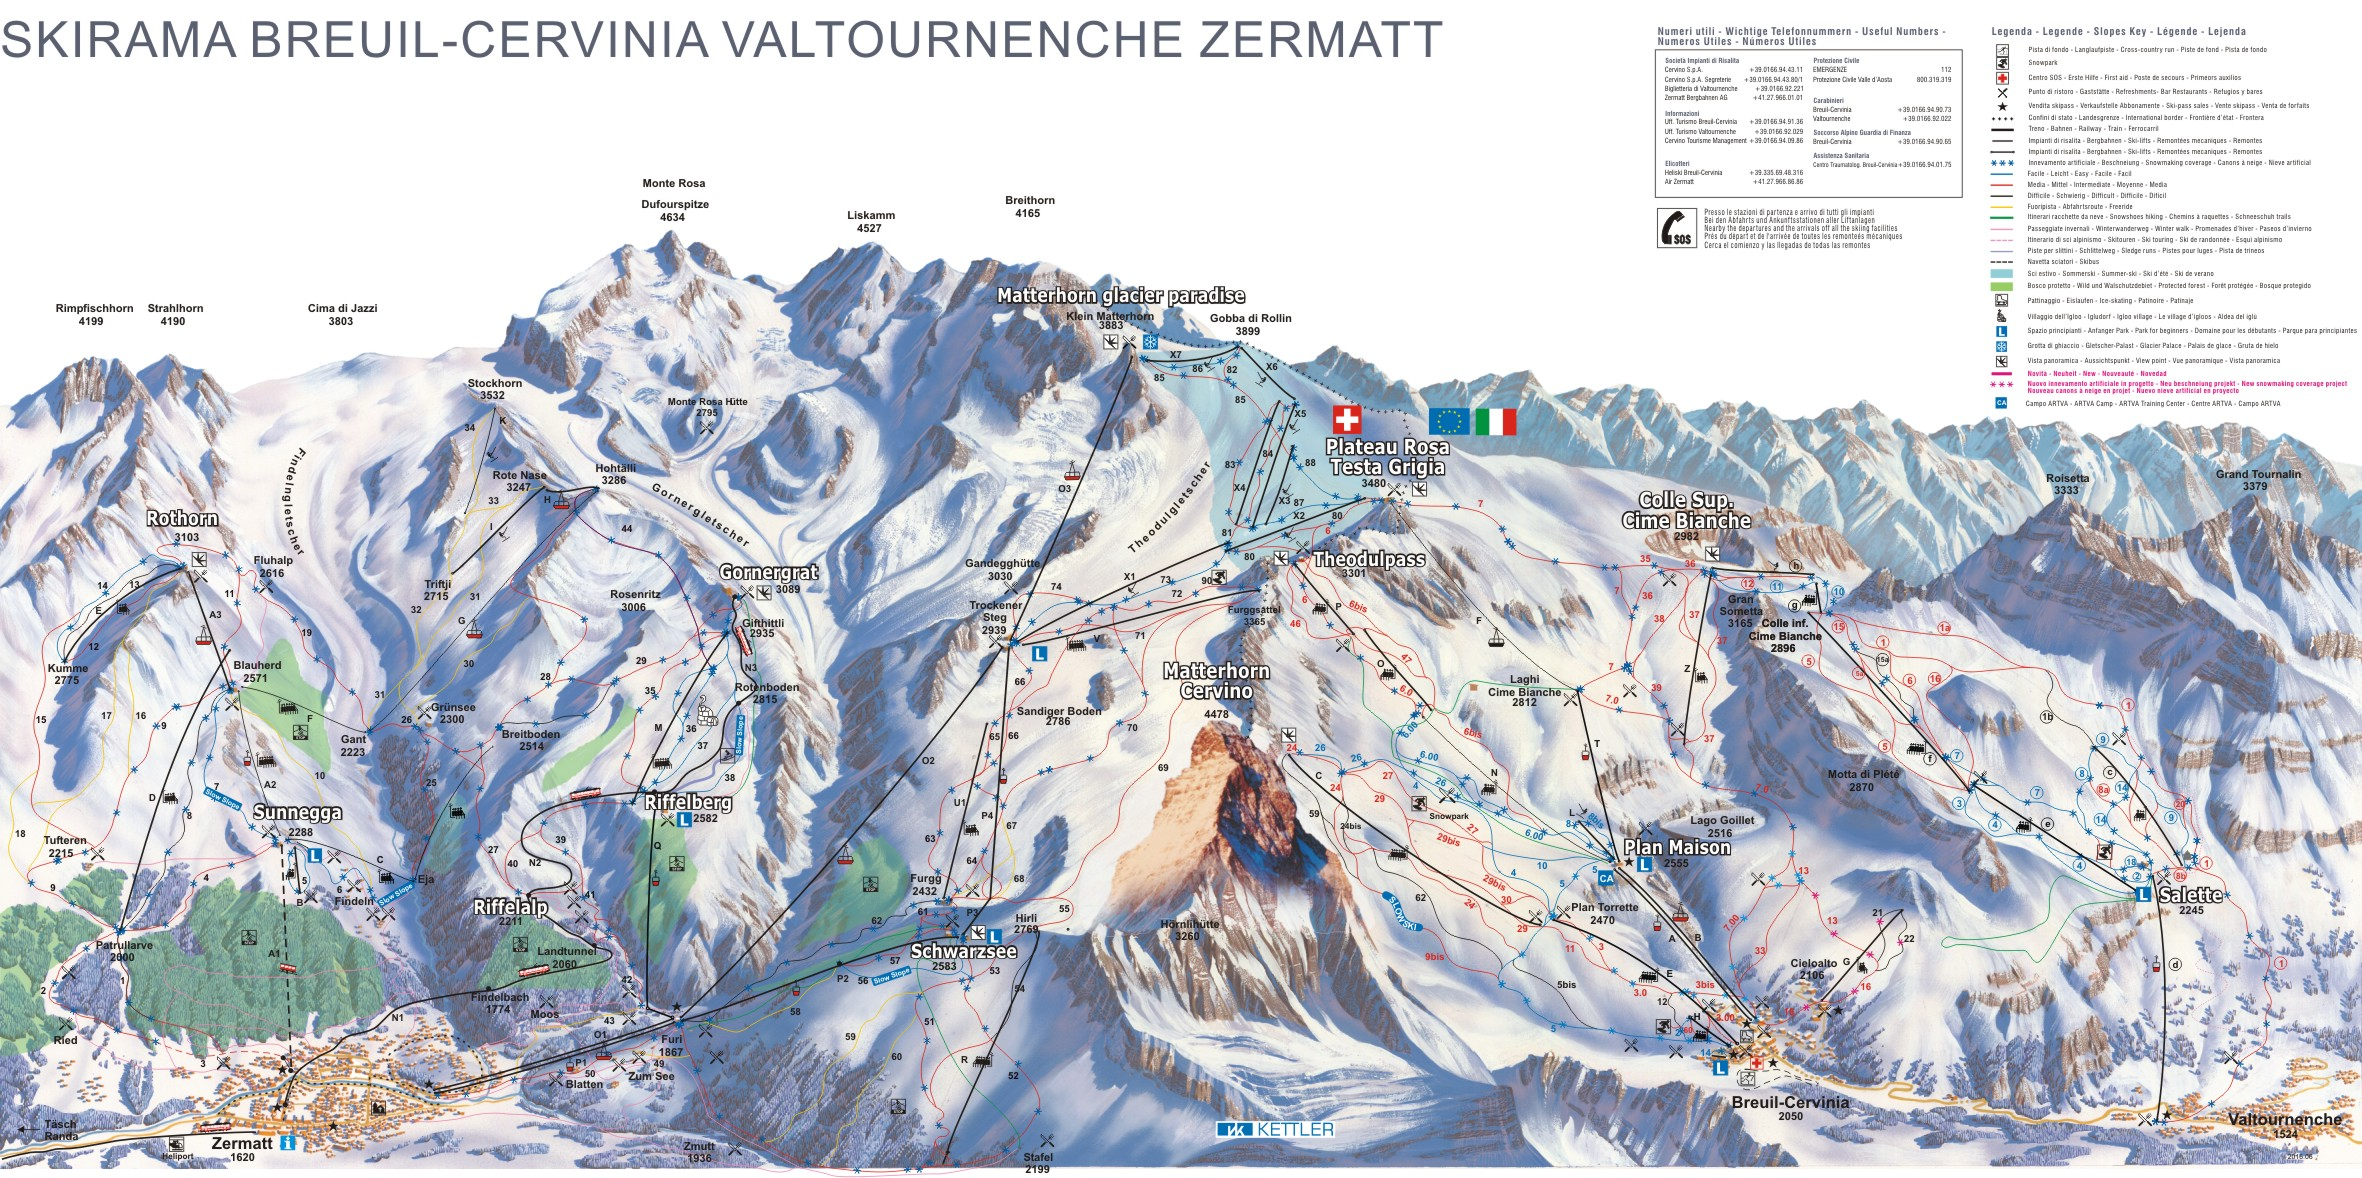 Cervinia Ski Trail Map Free Download